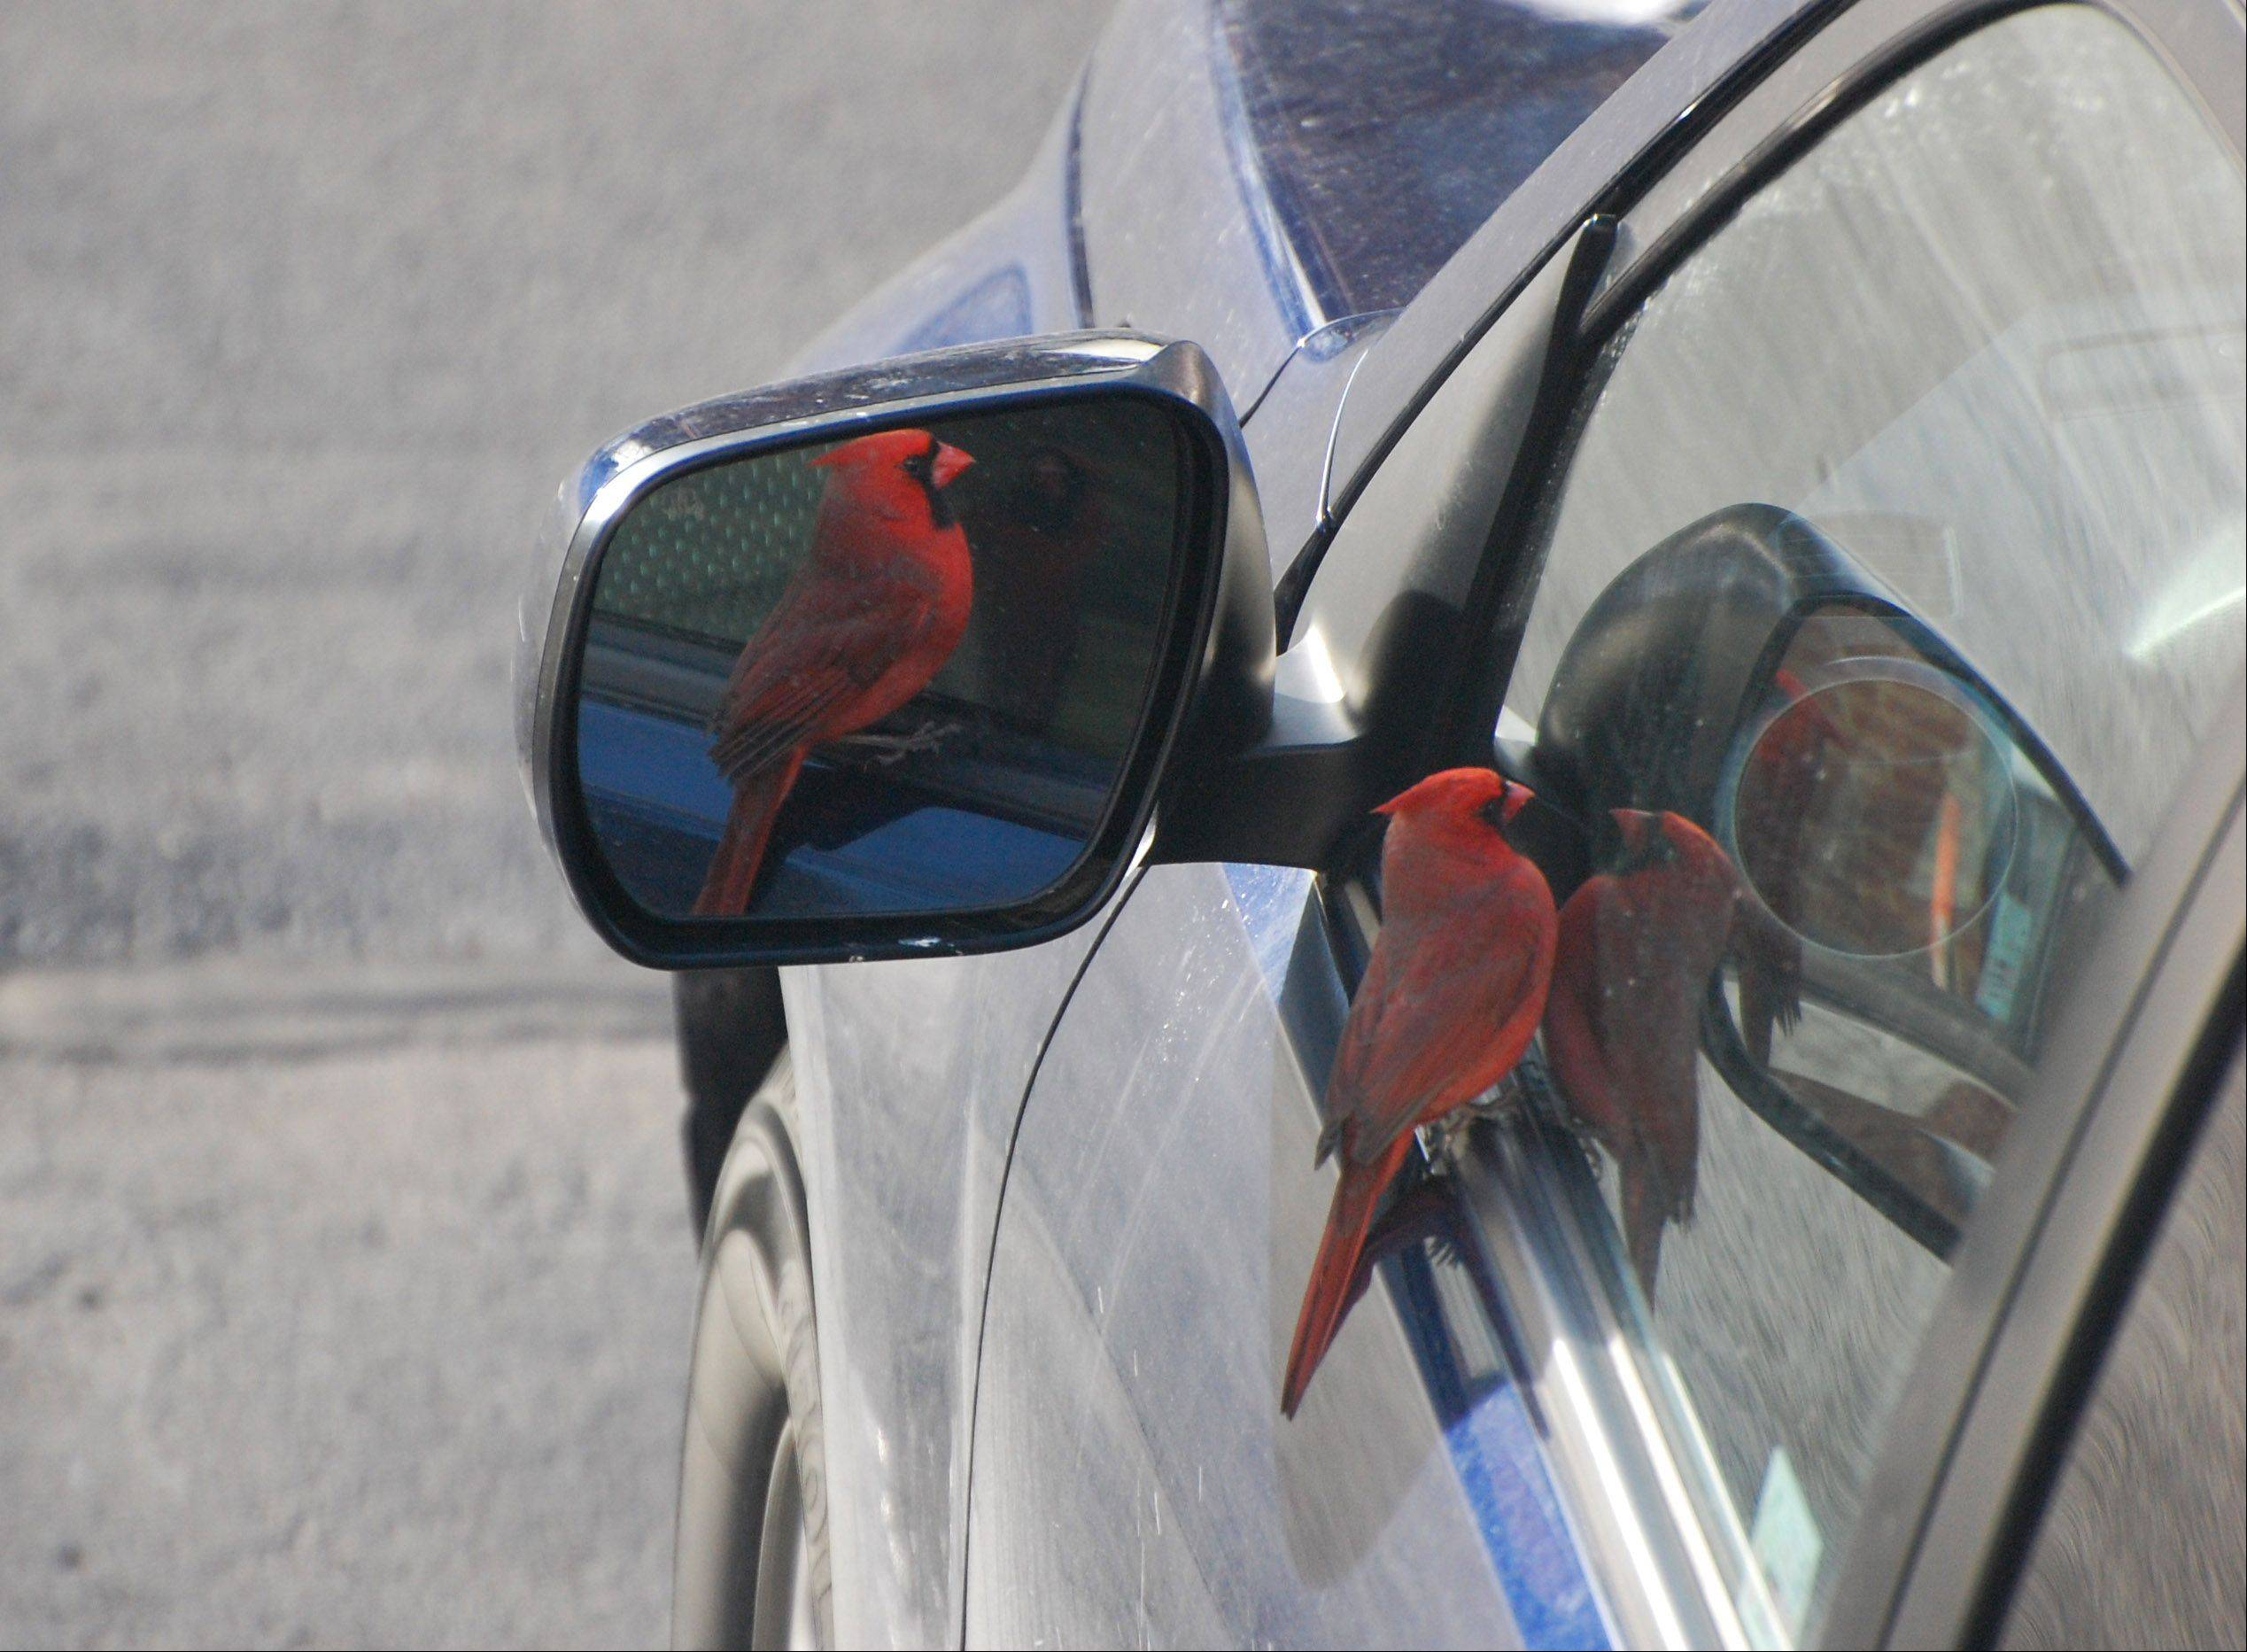 A male cardinal looks at itself in the rearview mirror of a car in Lakemoor on February 3rd.